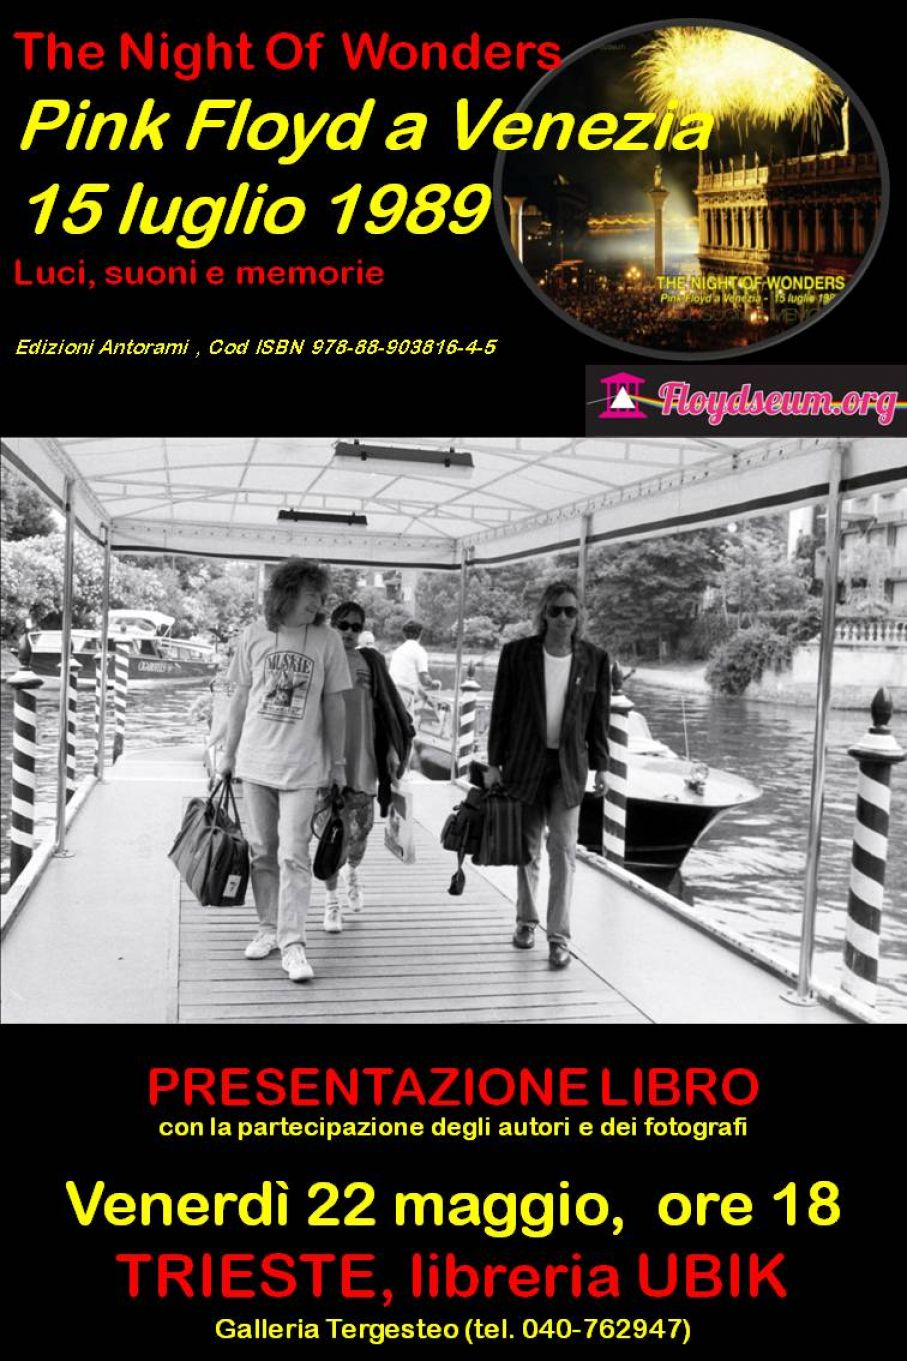 The Night of Wonders, presentazione libro in Ubik, Trieste